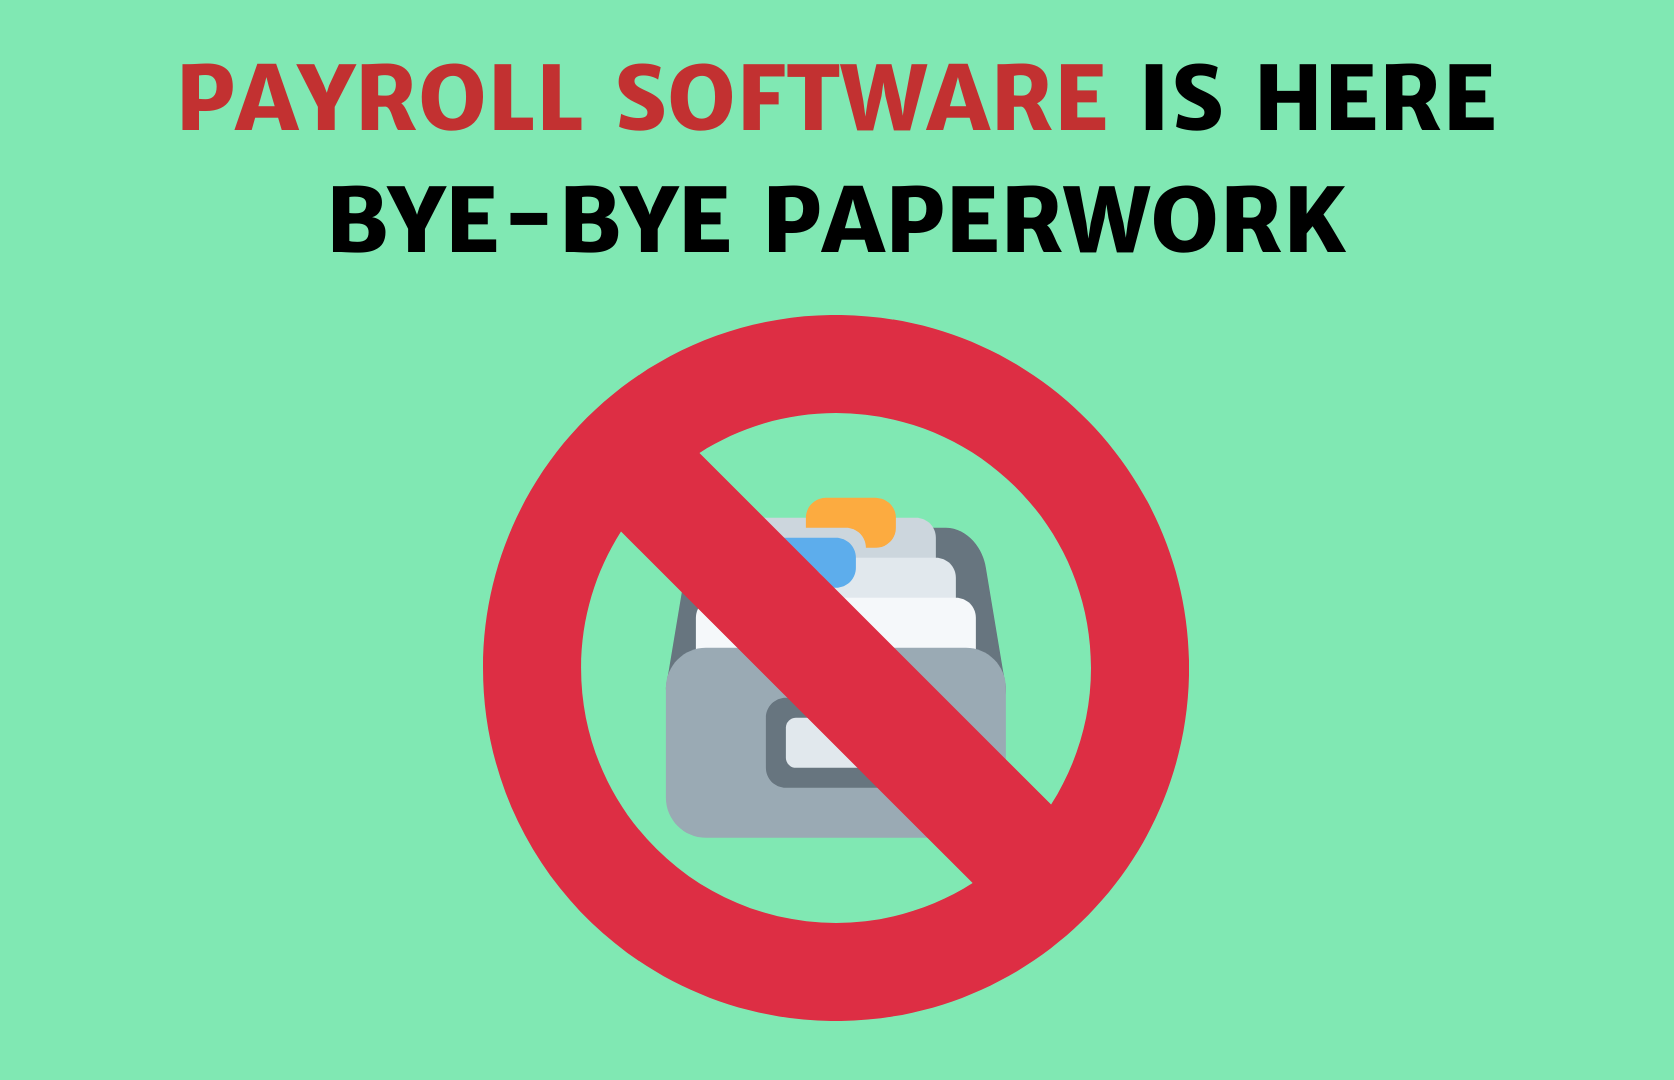 PAYROLL SOFTWARE SAYS BYE BYE TO PAPERWORK